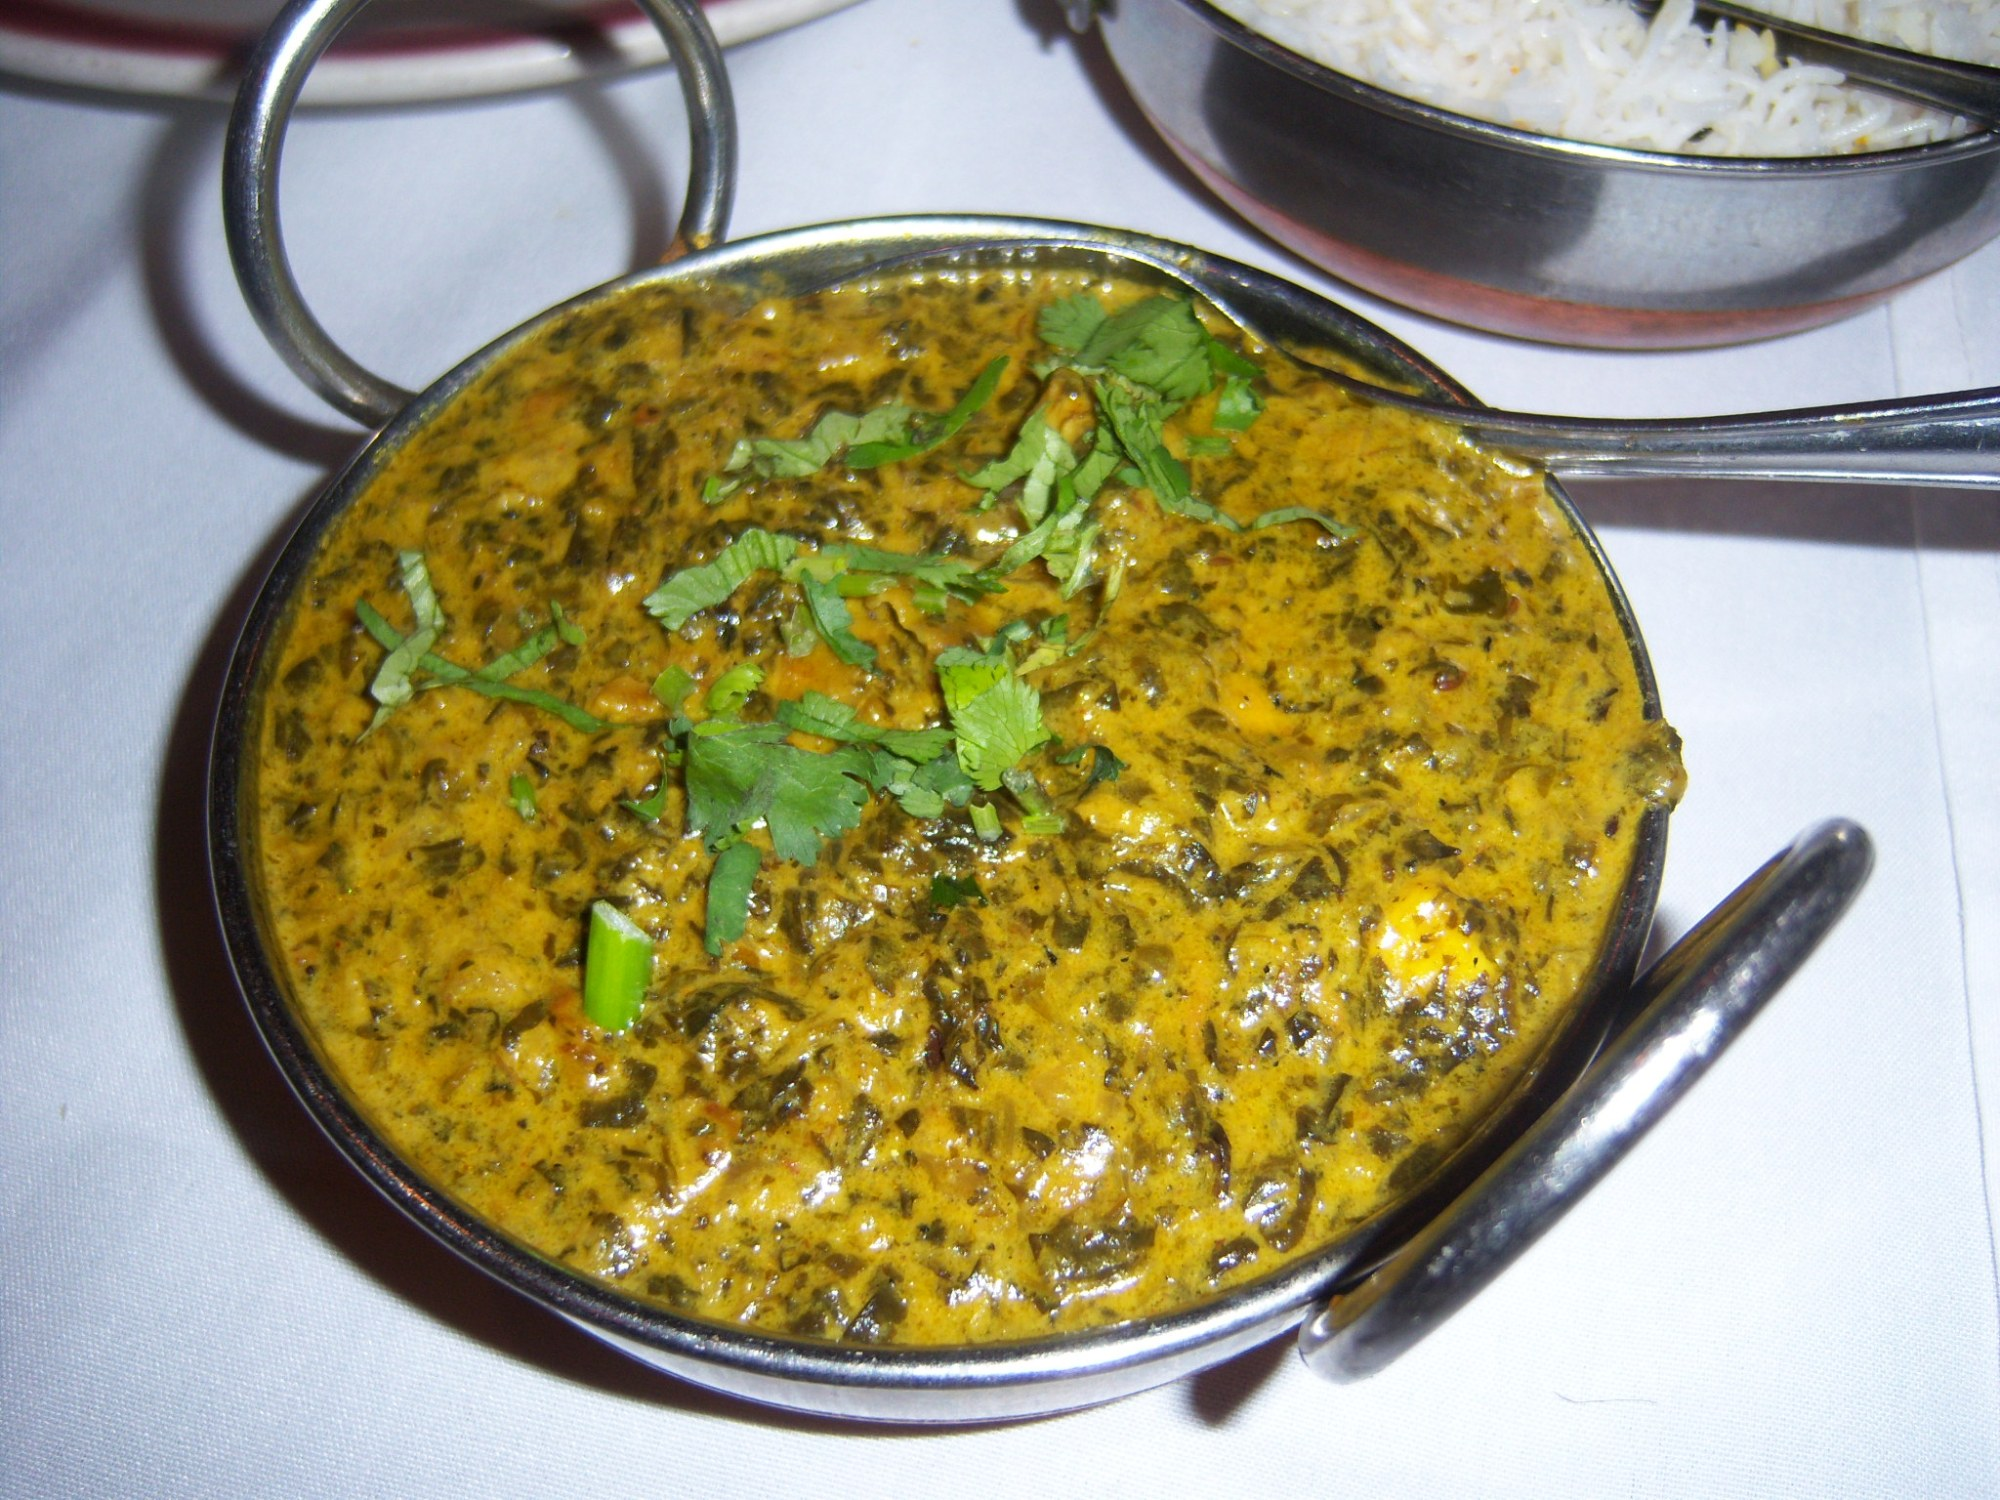 Saag Paneer at India Oven Restaurant